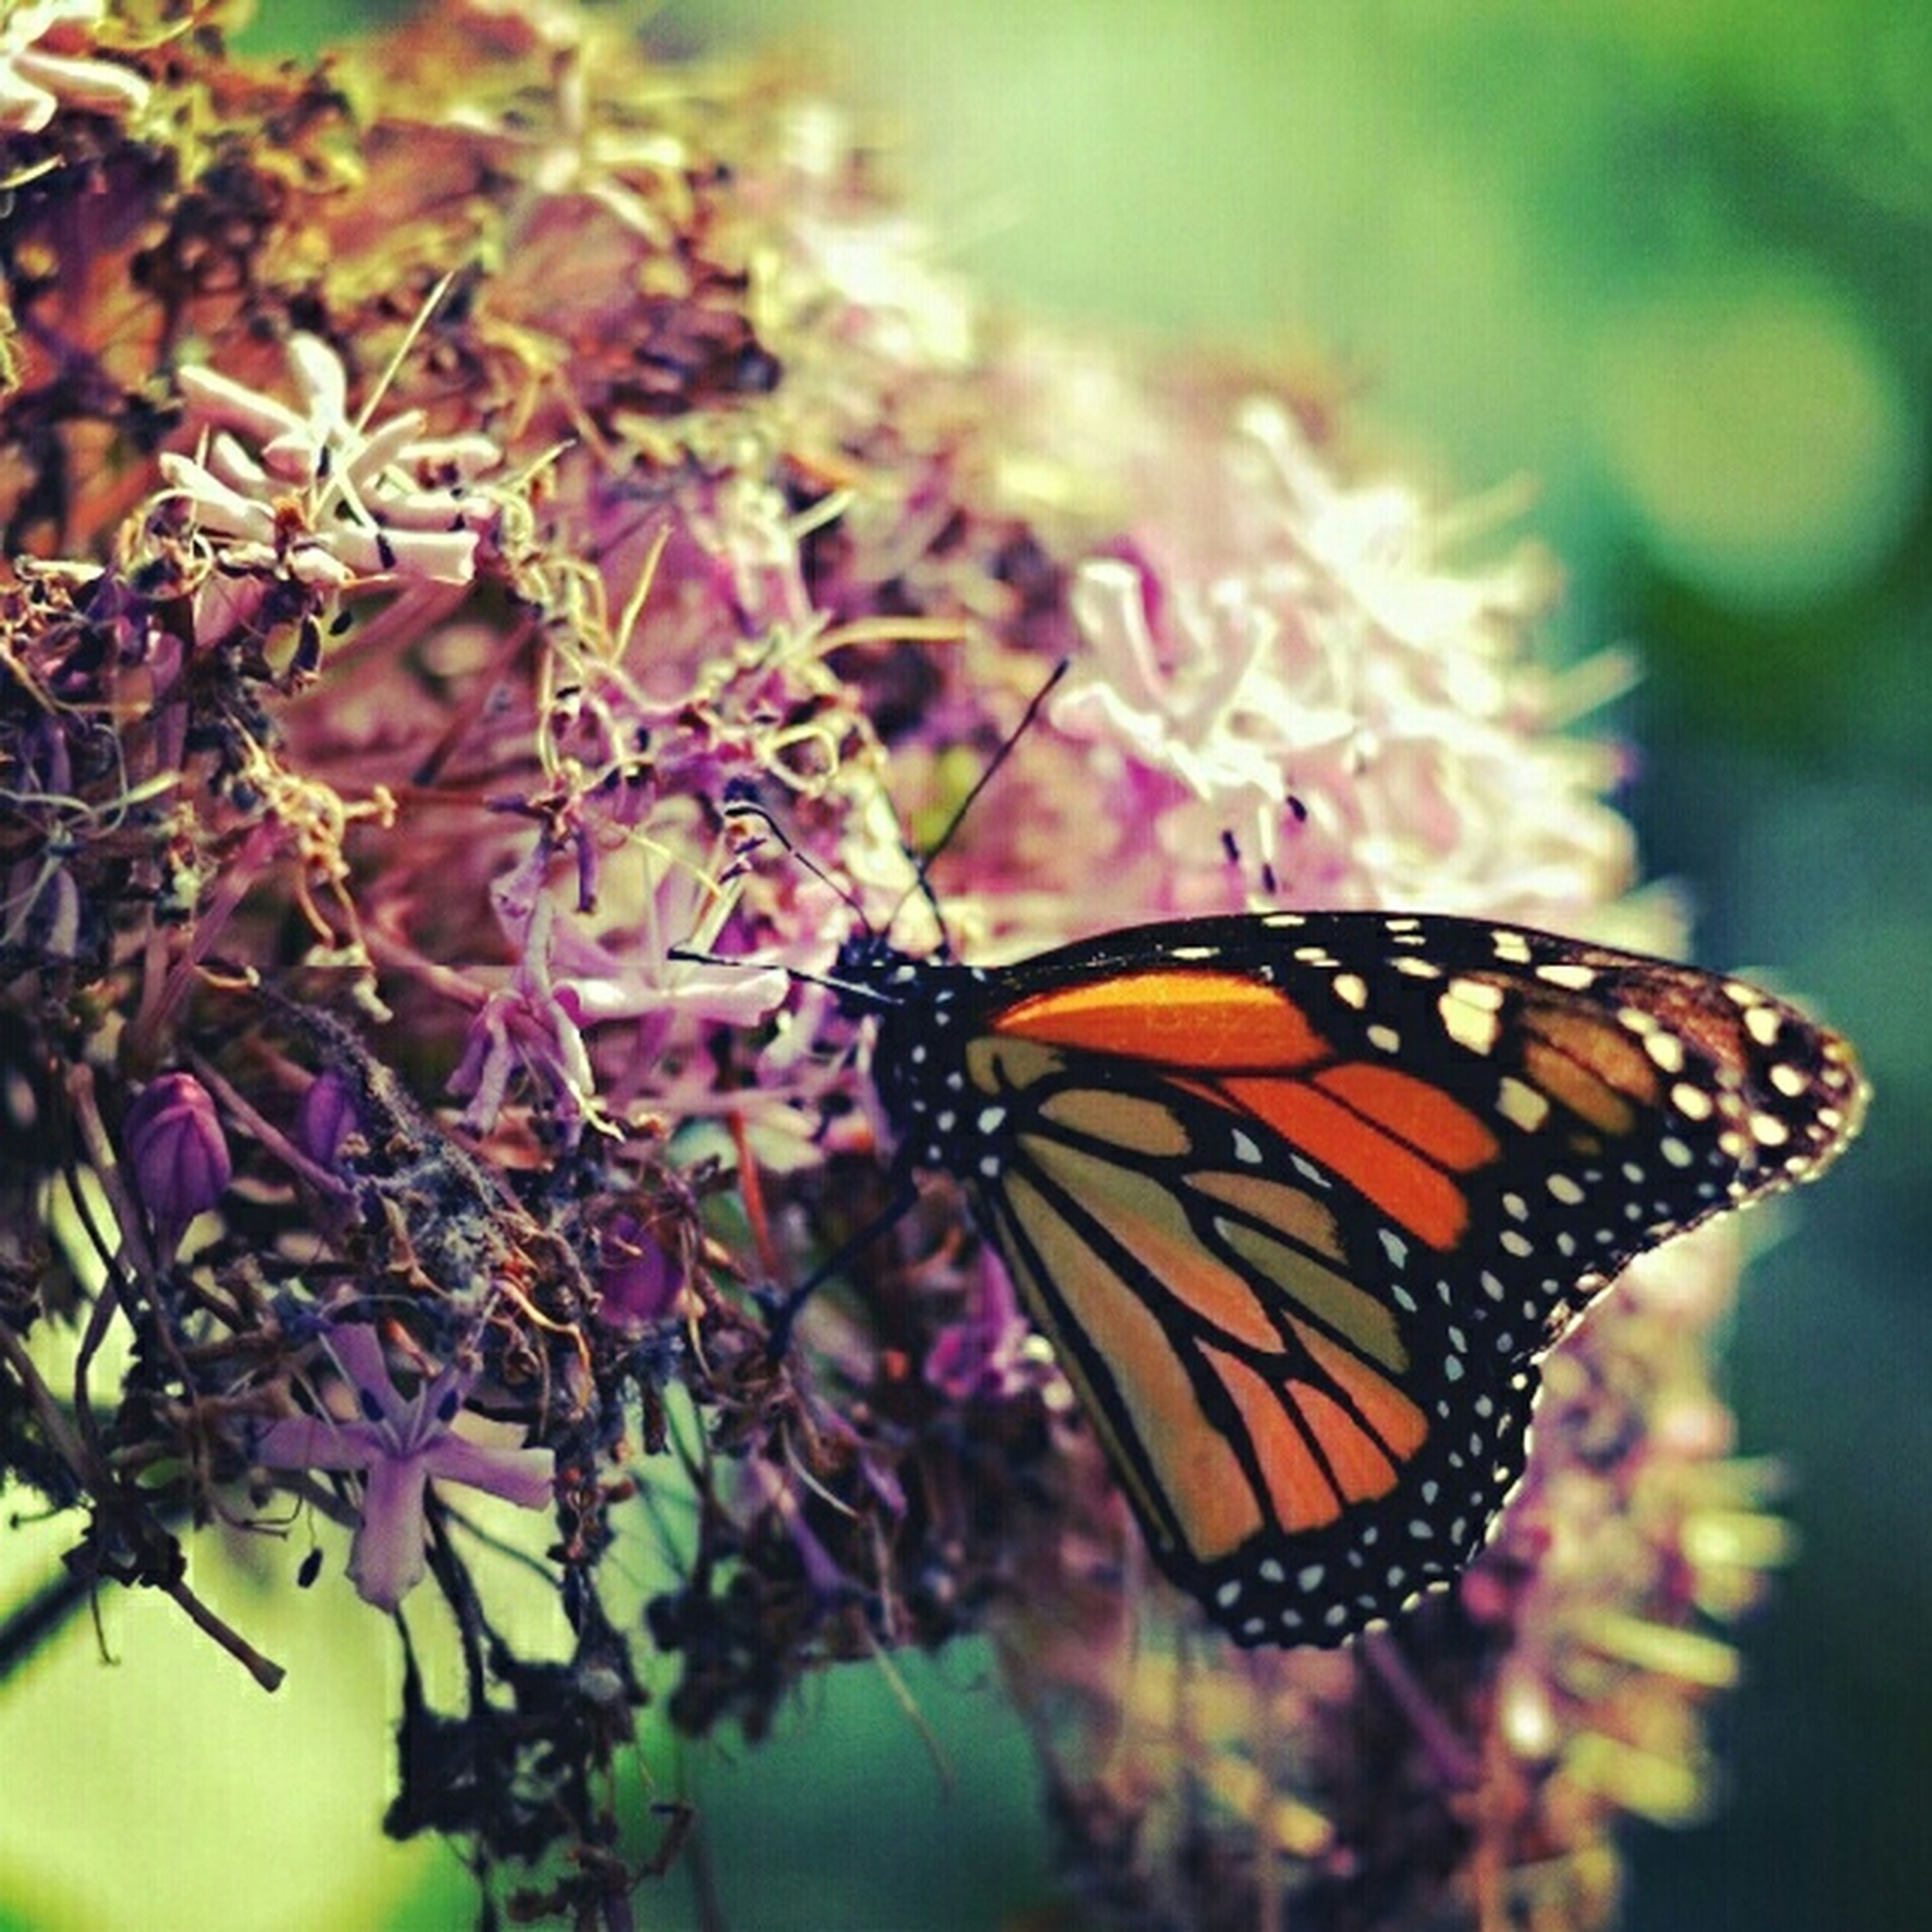 insect, one animal, animal themes, animals in the wild, butterfly - insect, wildlife, butterfly, close-up, focus on foreground, flower, animal markings, beauty in nature, plant, nature, fragility, animal wing, natural pattern, pollination, growth, freshness